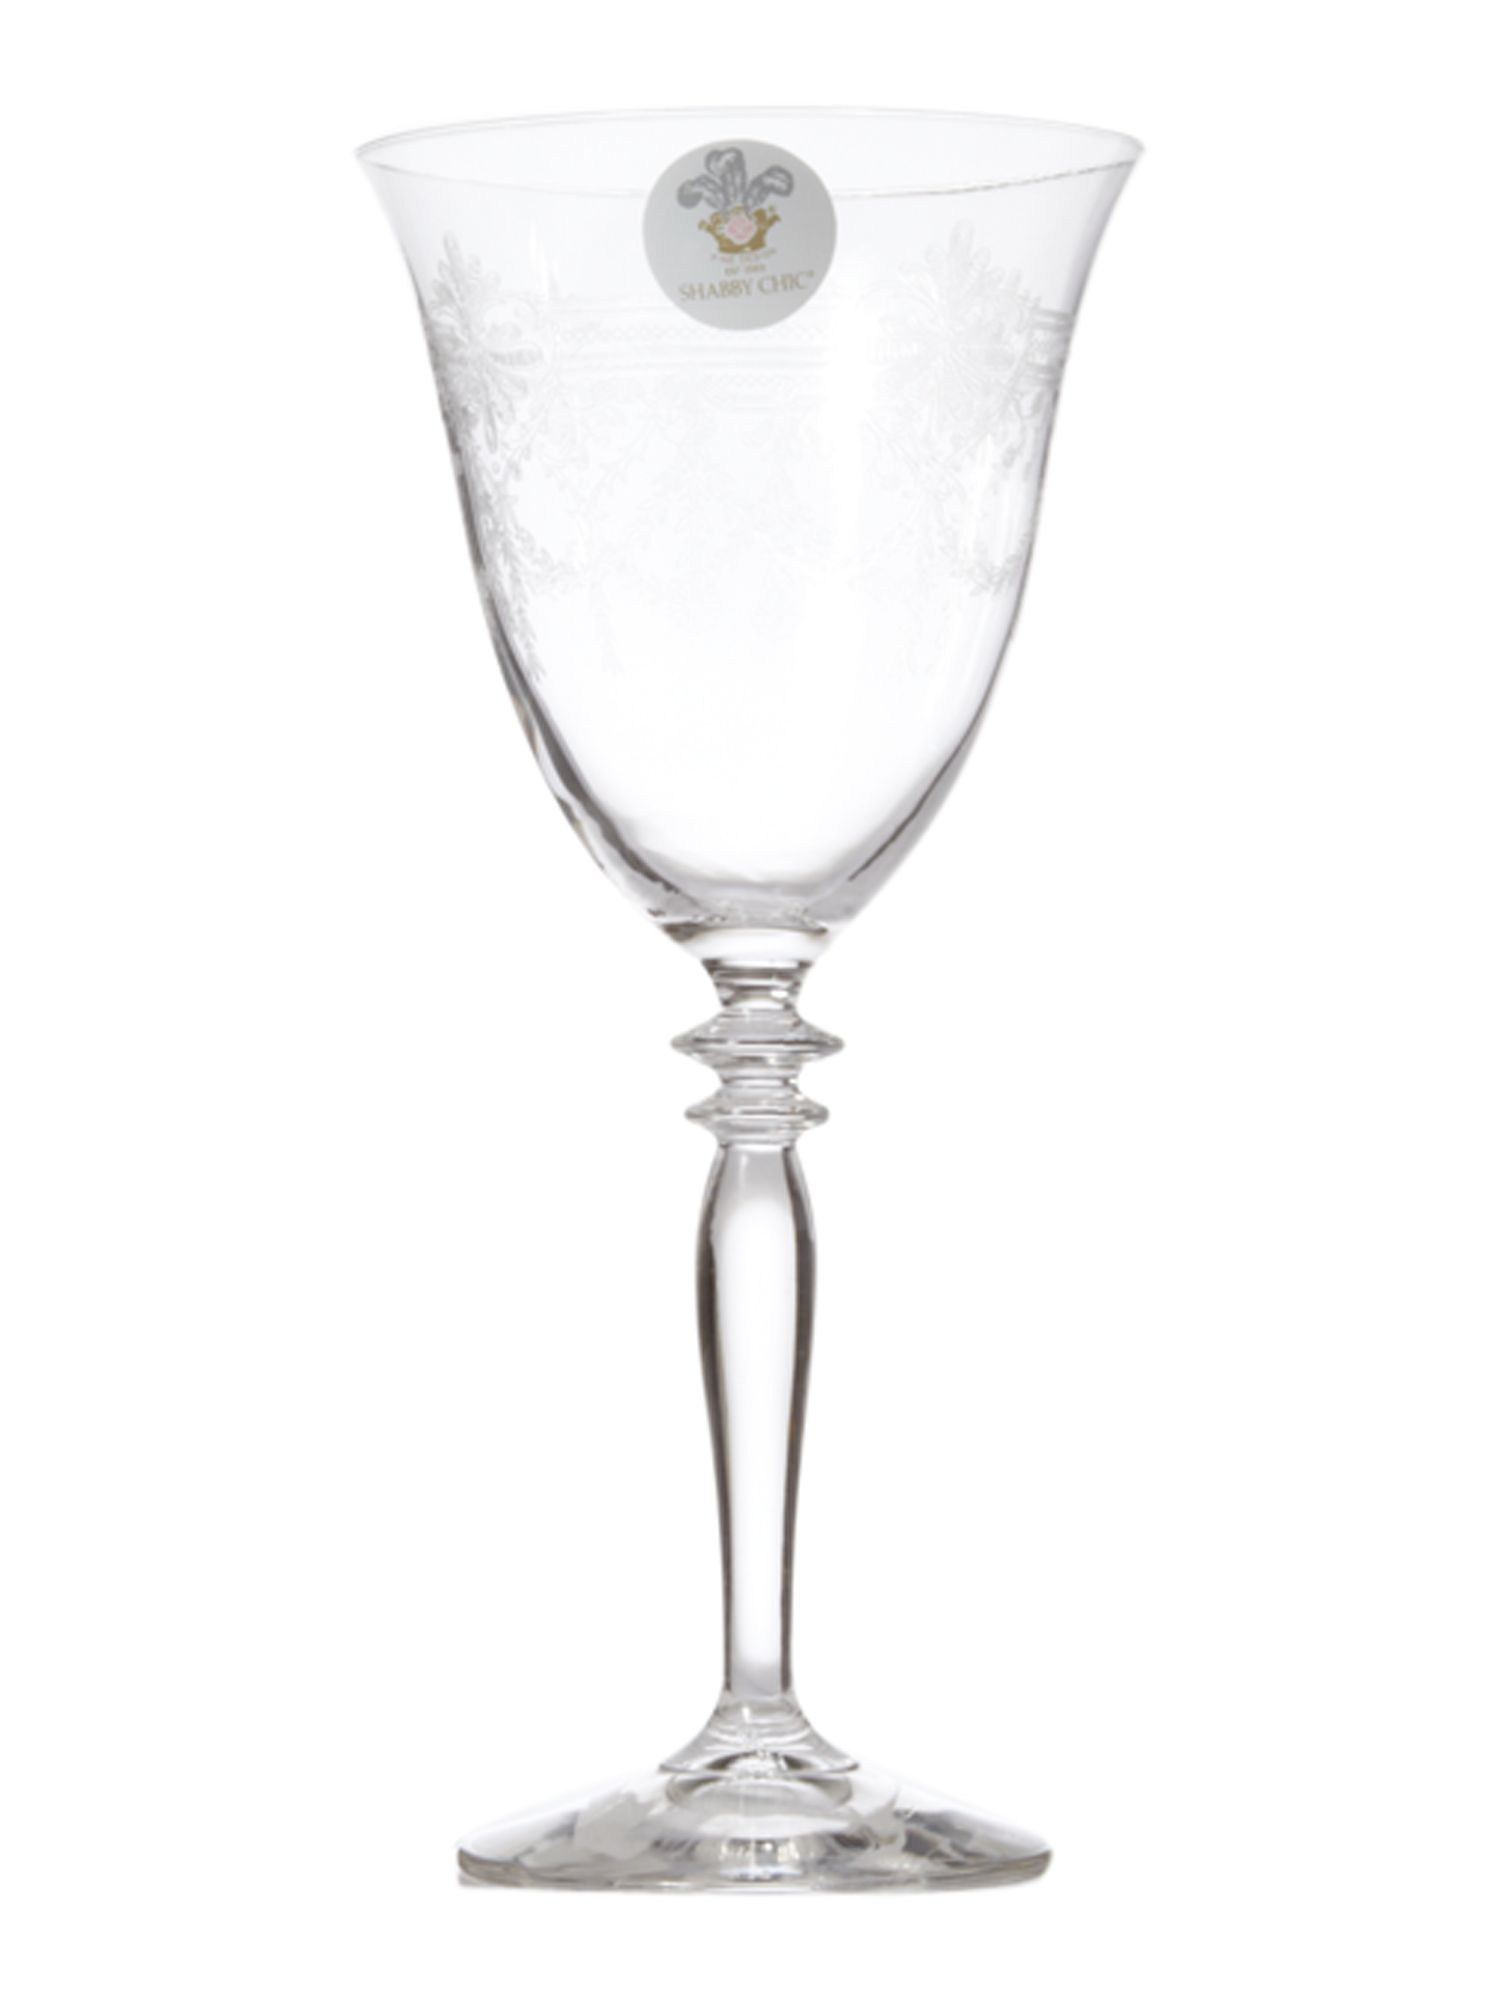 Victoria wine glass